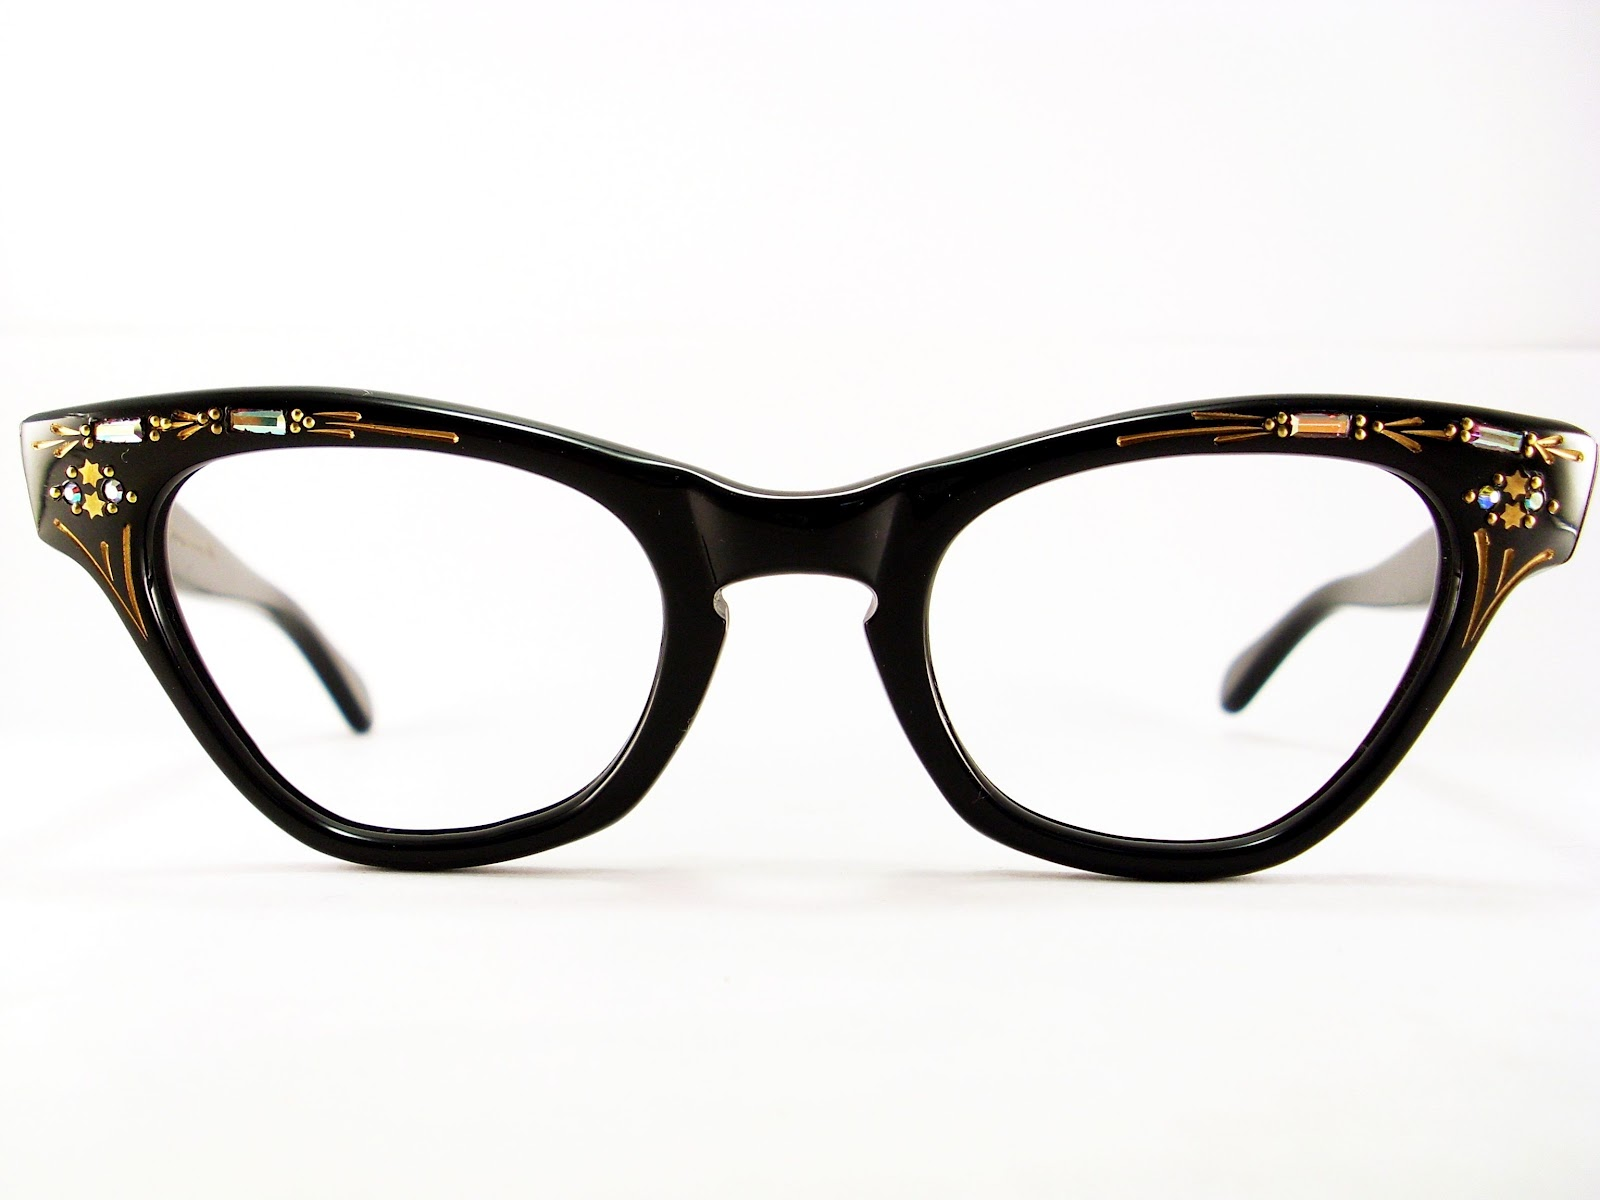 Vintage Eyeglass Frames Cat Eye : Vintage Eyeglasses Frames Eyewear Sunglasses 50S: CAT EYE ...